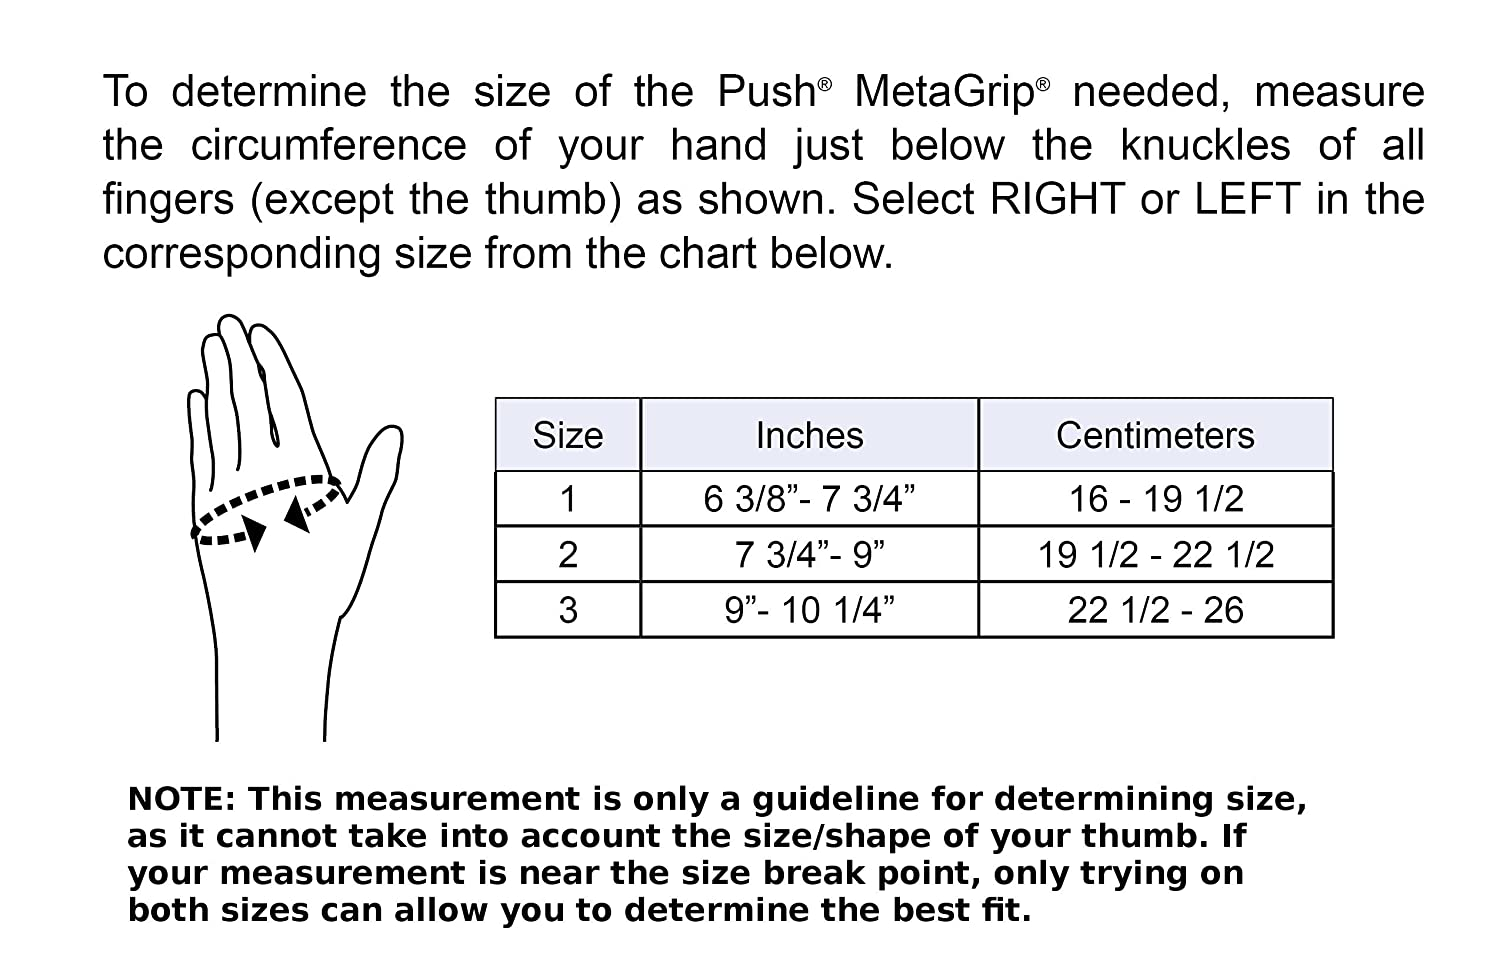 Amazon push metagrip left size 1 cmc thumb brace for relief of amazon push metagrip left size 1 cmc thumb brace for relief of osteoarthritis pain health personal care geenschuldenfo Gallery